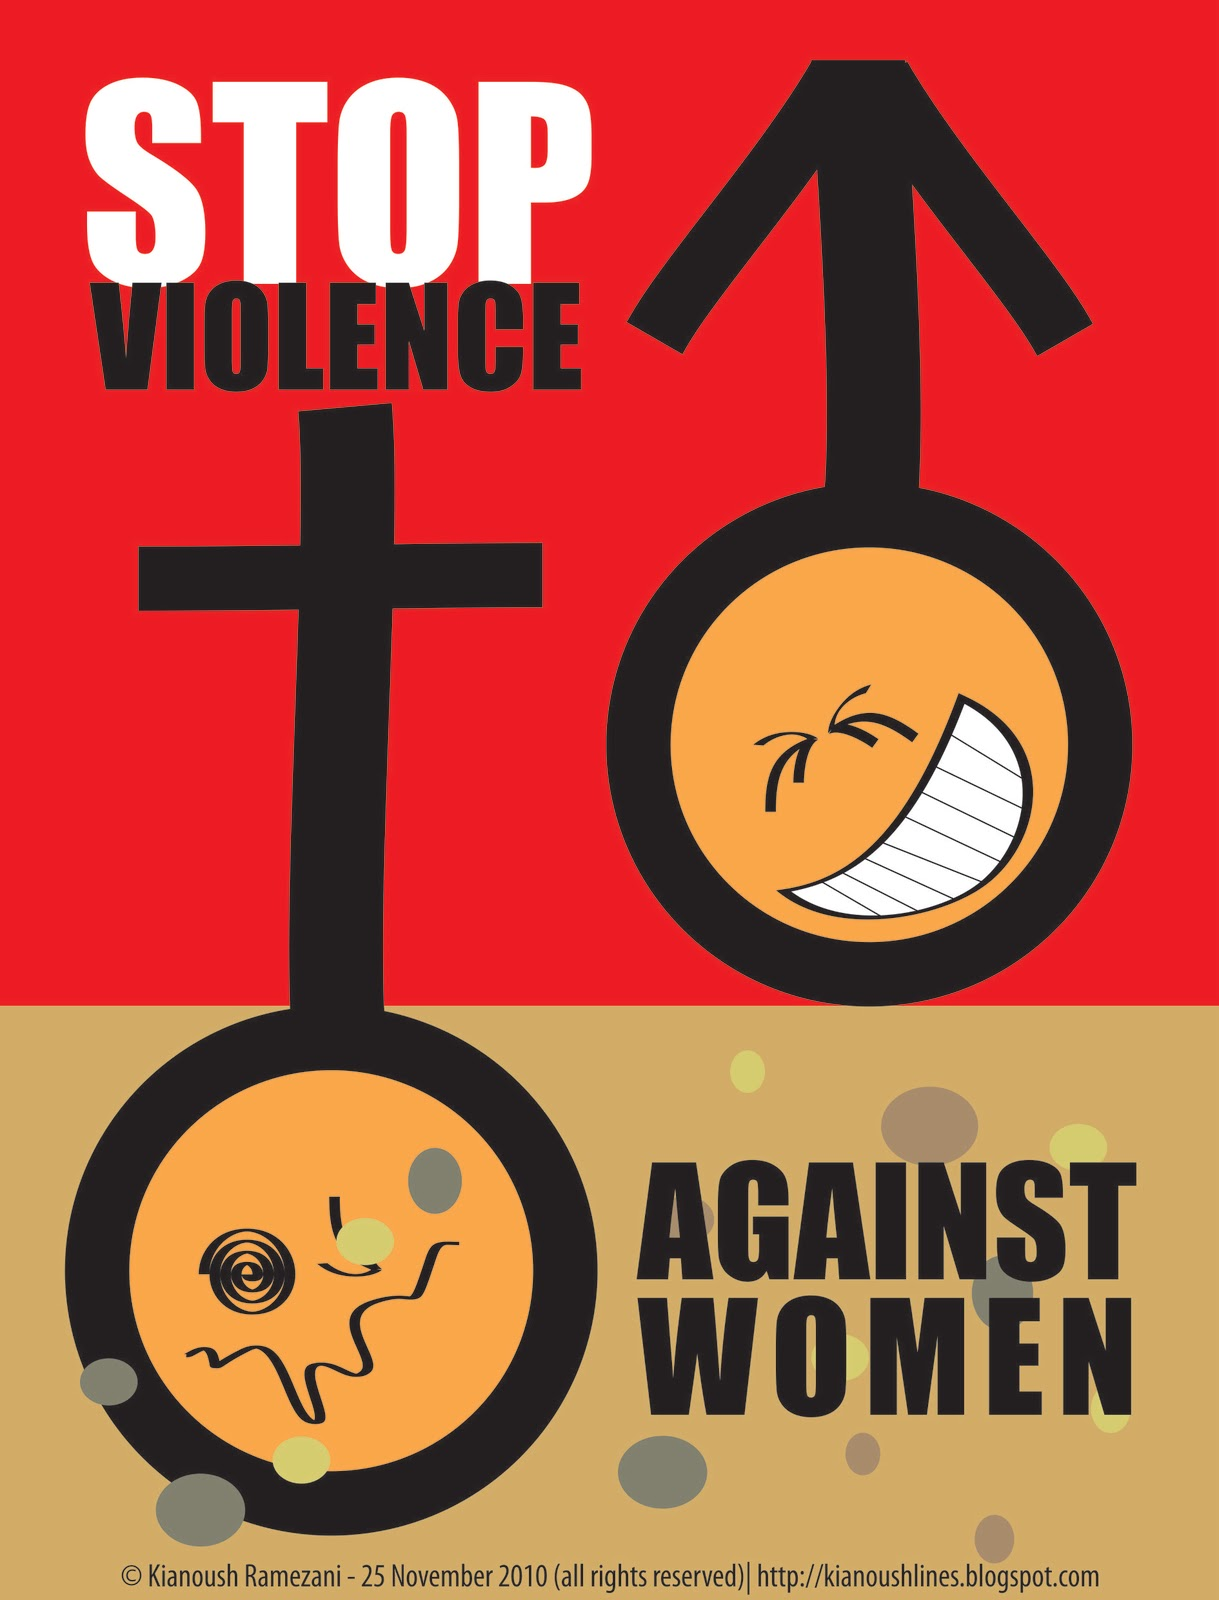 elimination of violence against women The united nations defines violence against women as any act of gender-based violence that results in, or is likely to result in, physical, sexual, or mental harm or suffering to women.